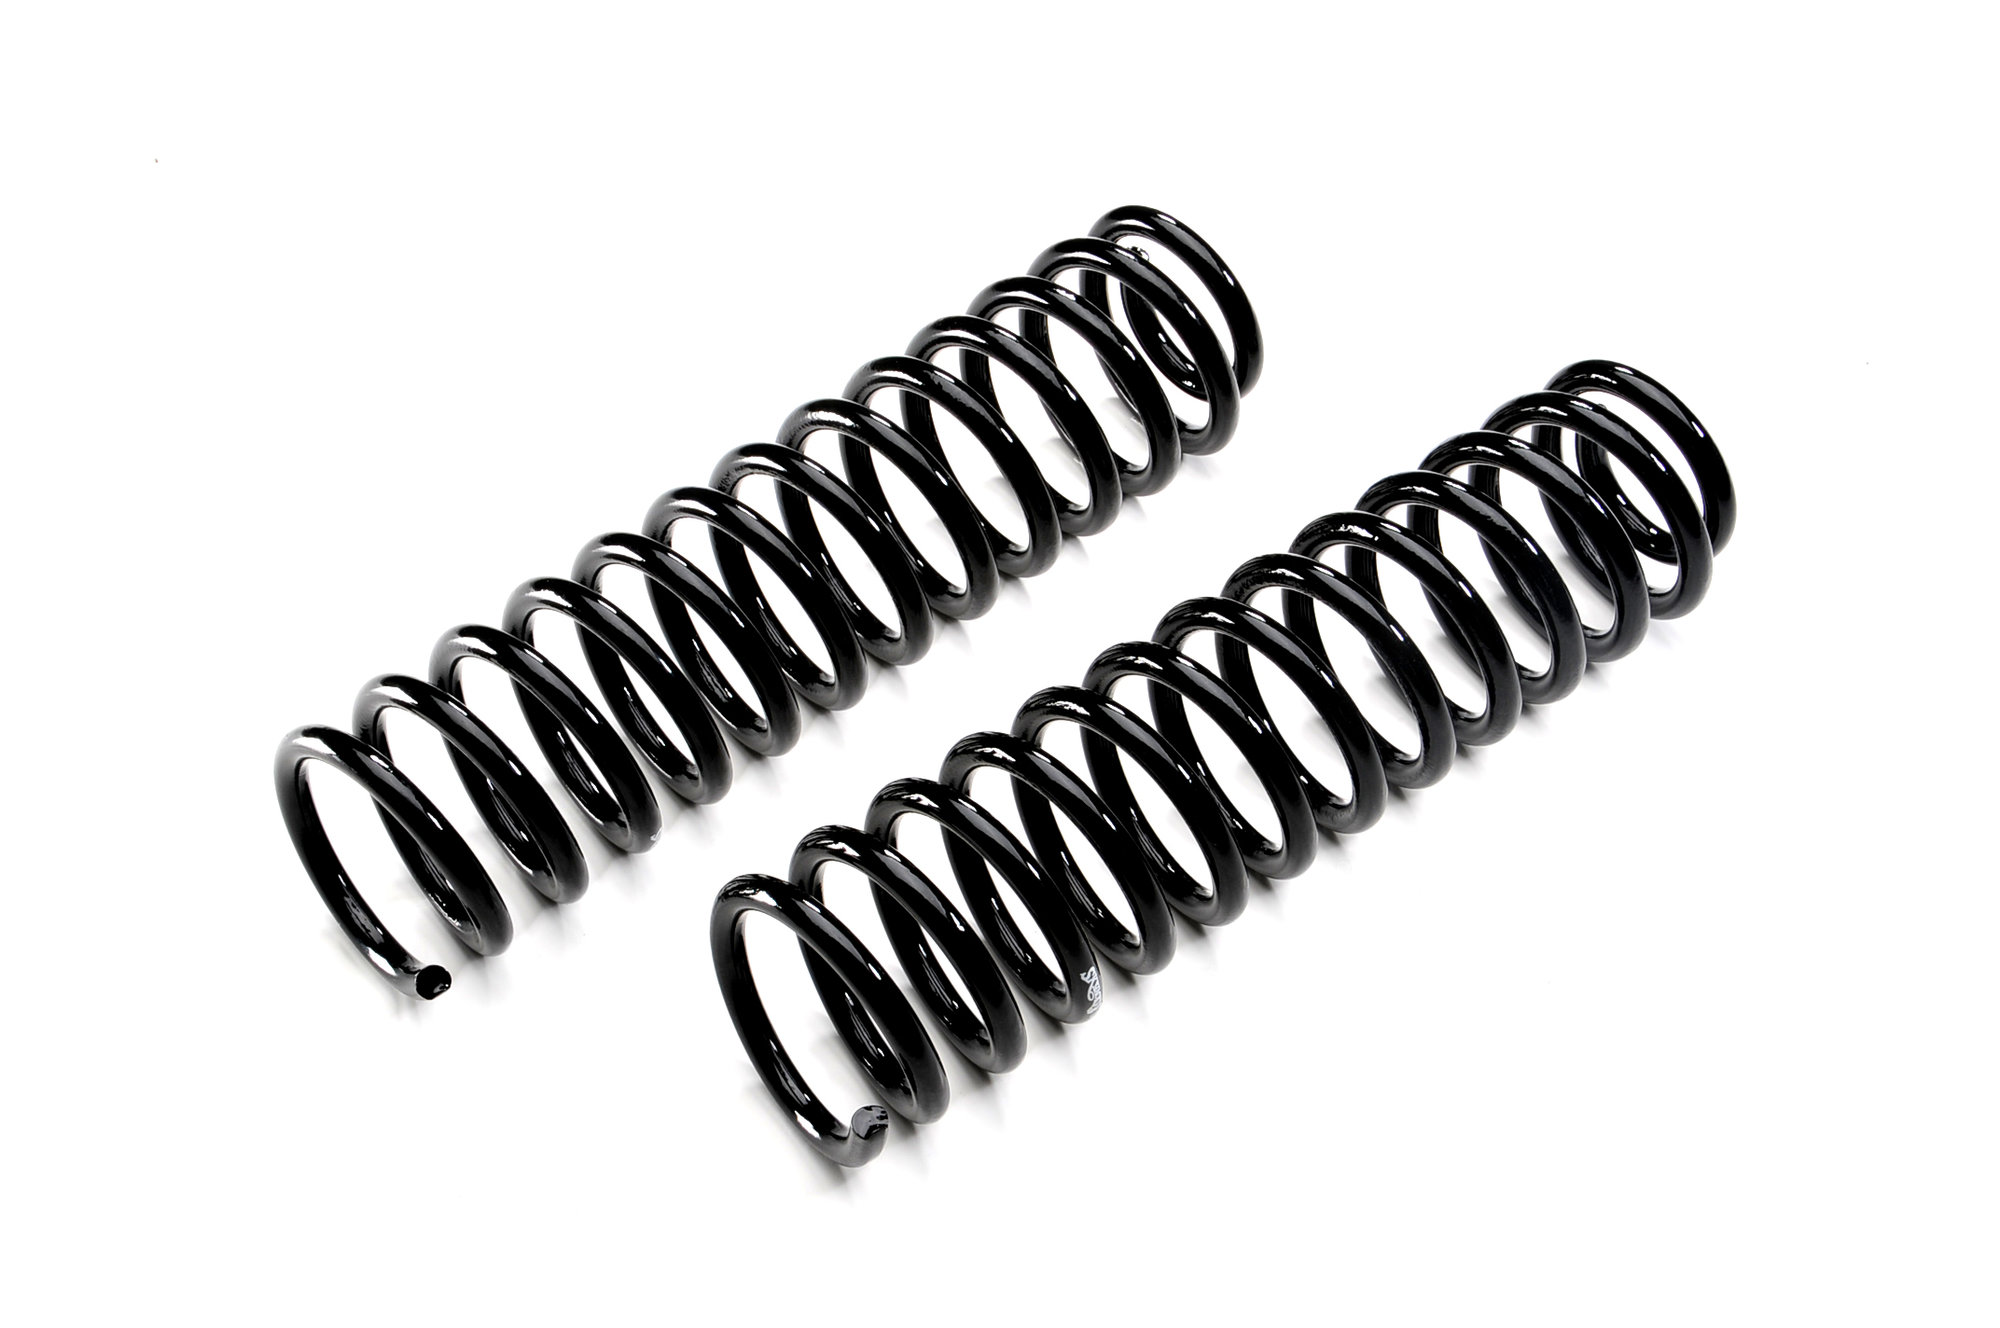 Skyjacker Tj40f Front Coil Springs For 97 06 Jeep